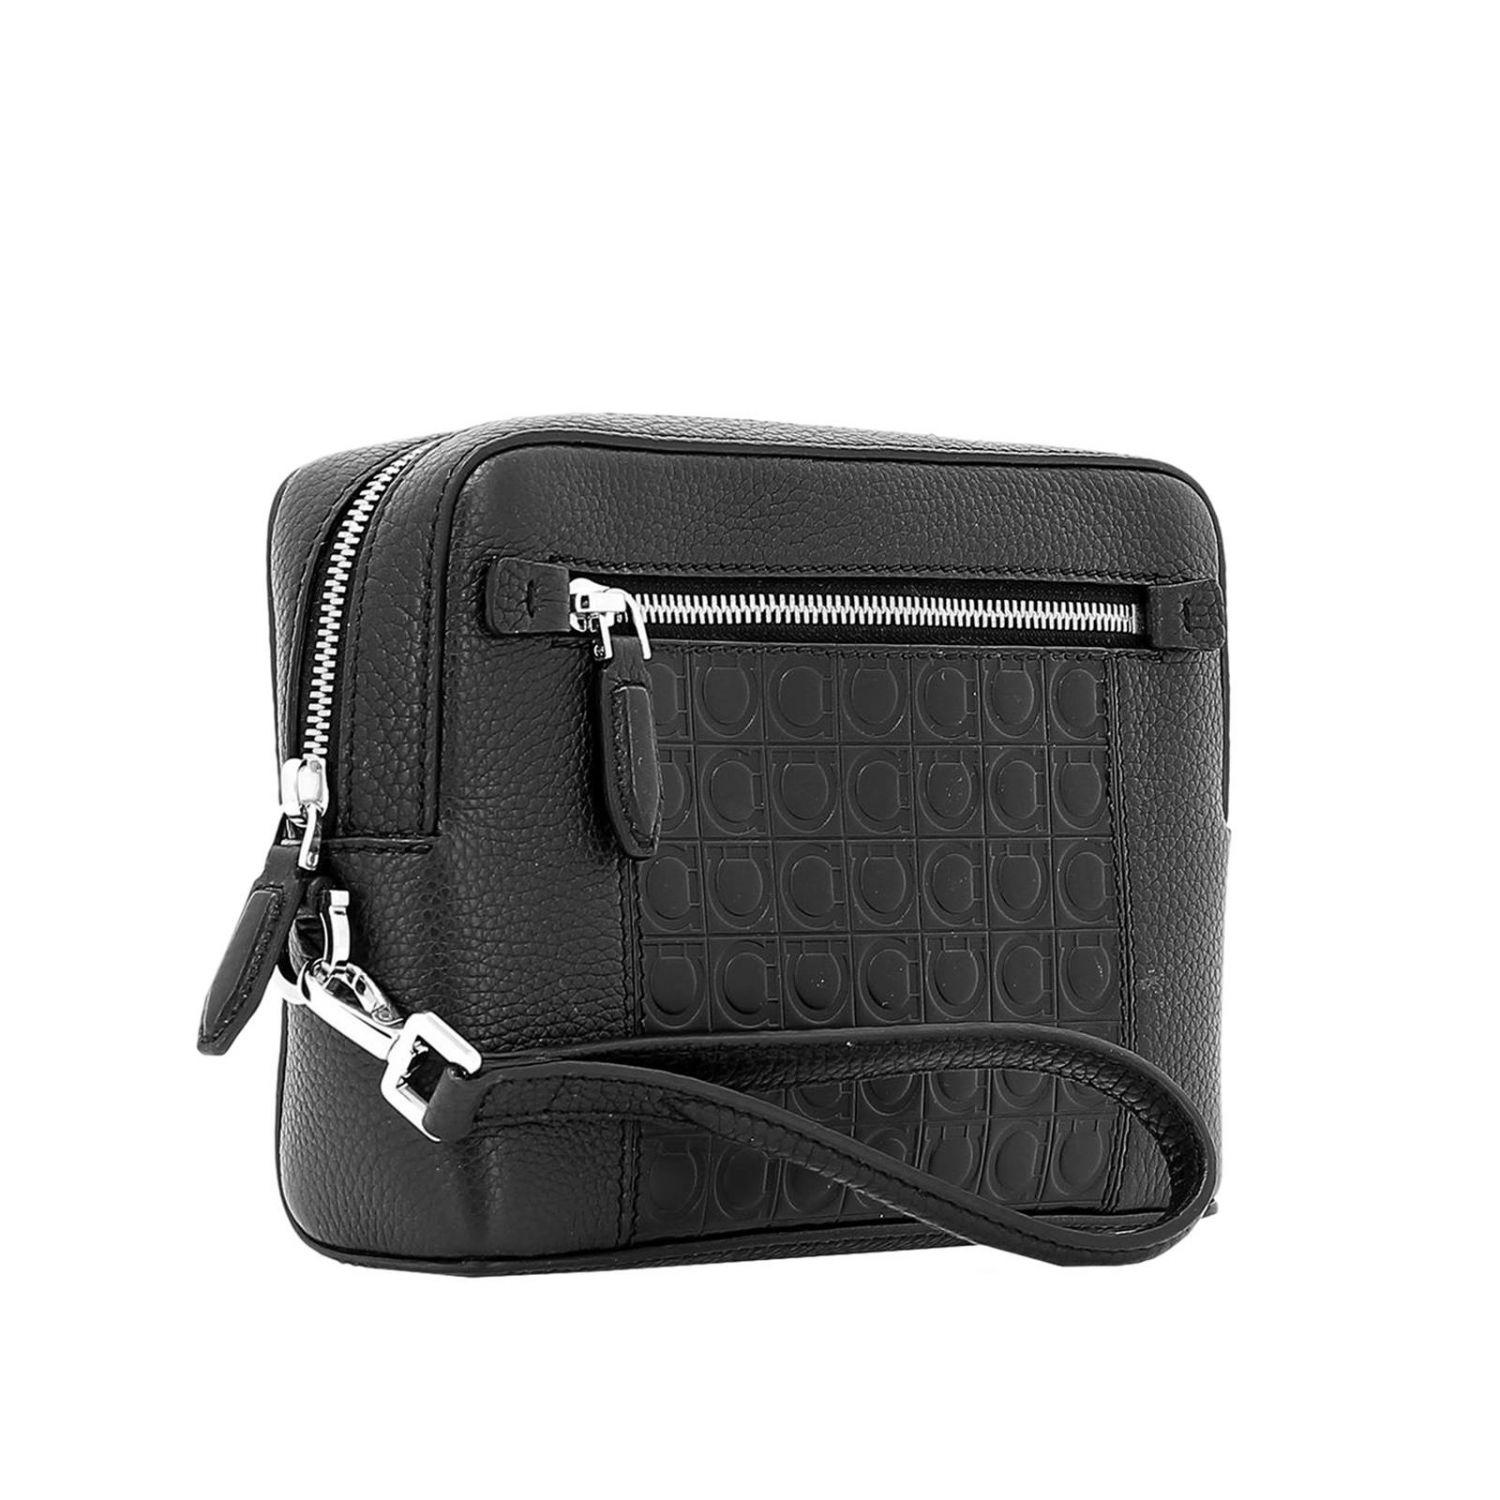 219707ad43c Ferragamo - Black Bags Men for Men - Lyst. View fullscreen